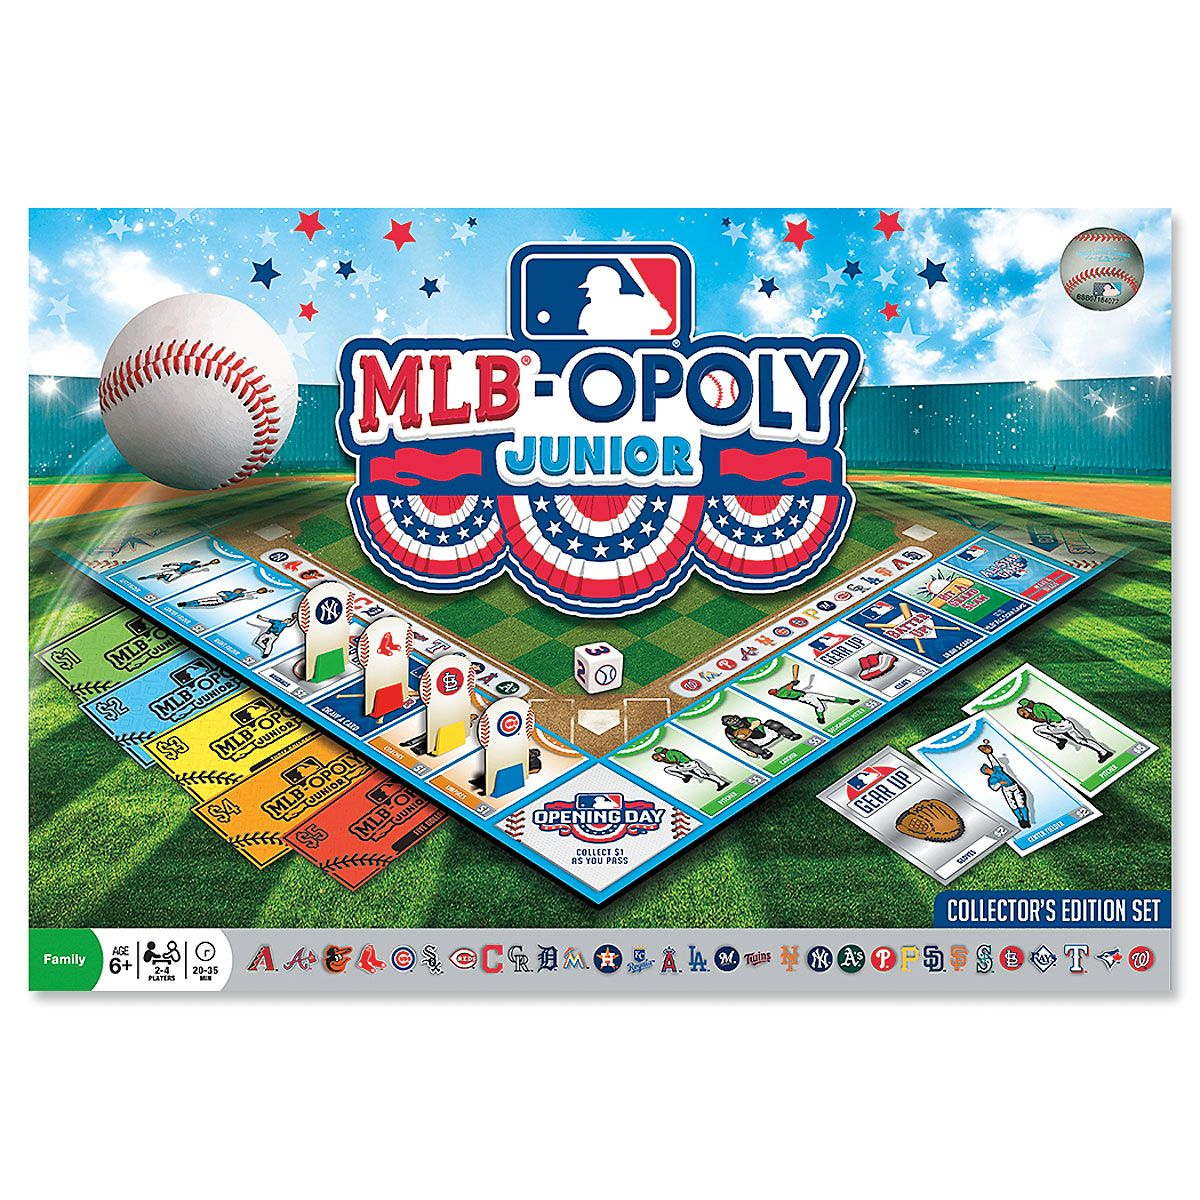 MLB-Opoly® Jr. Collector's Editions Game